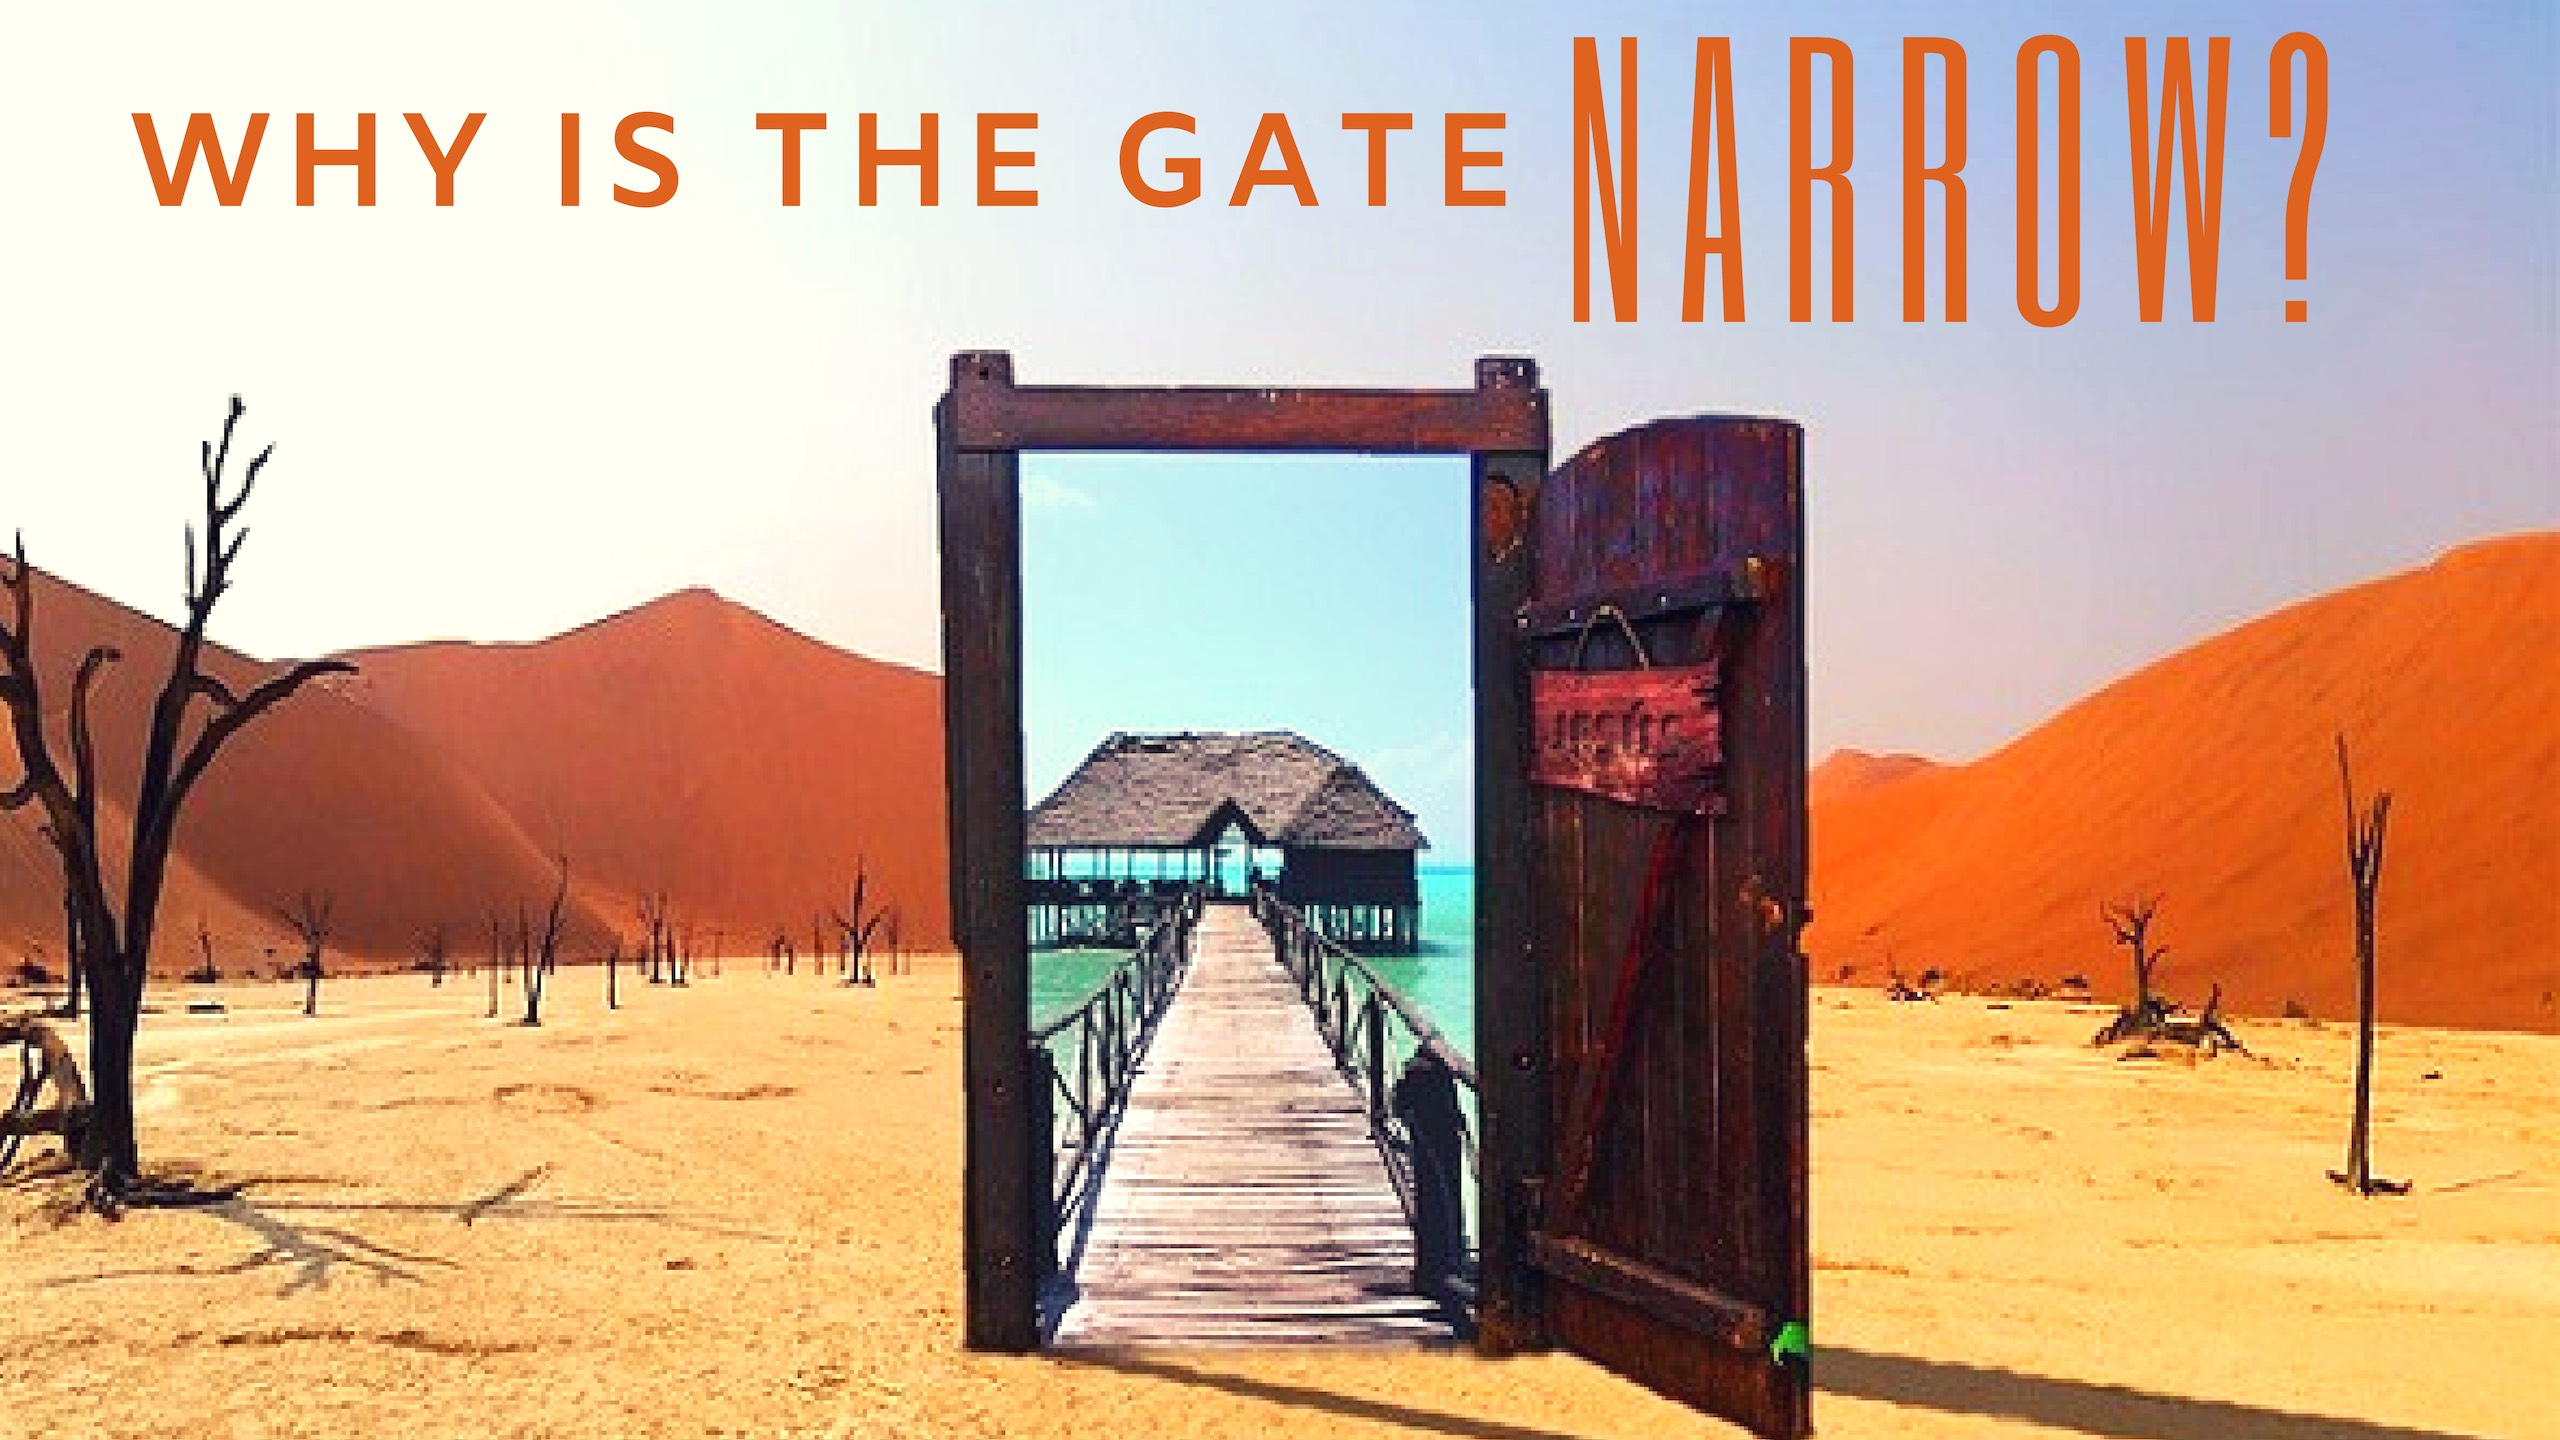 Why is the gate narrow?